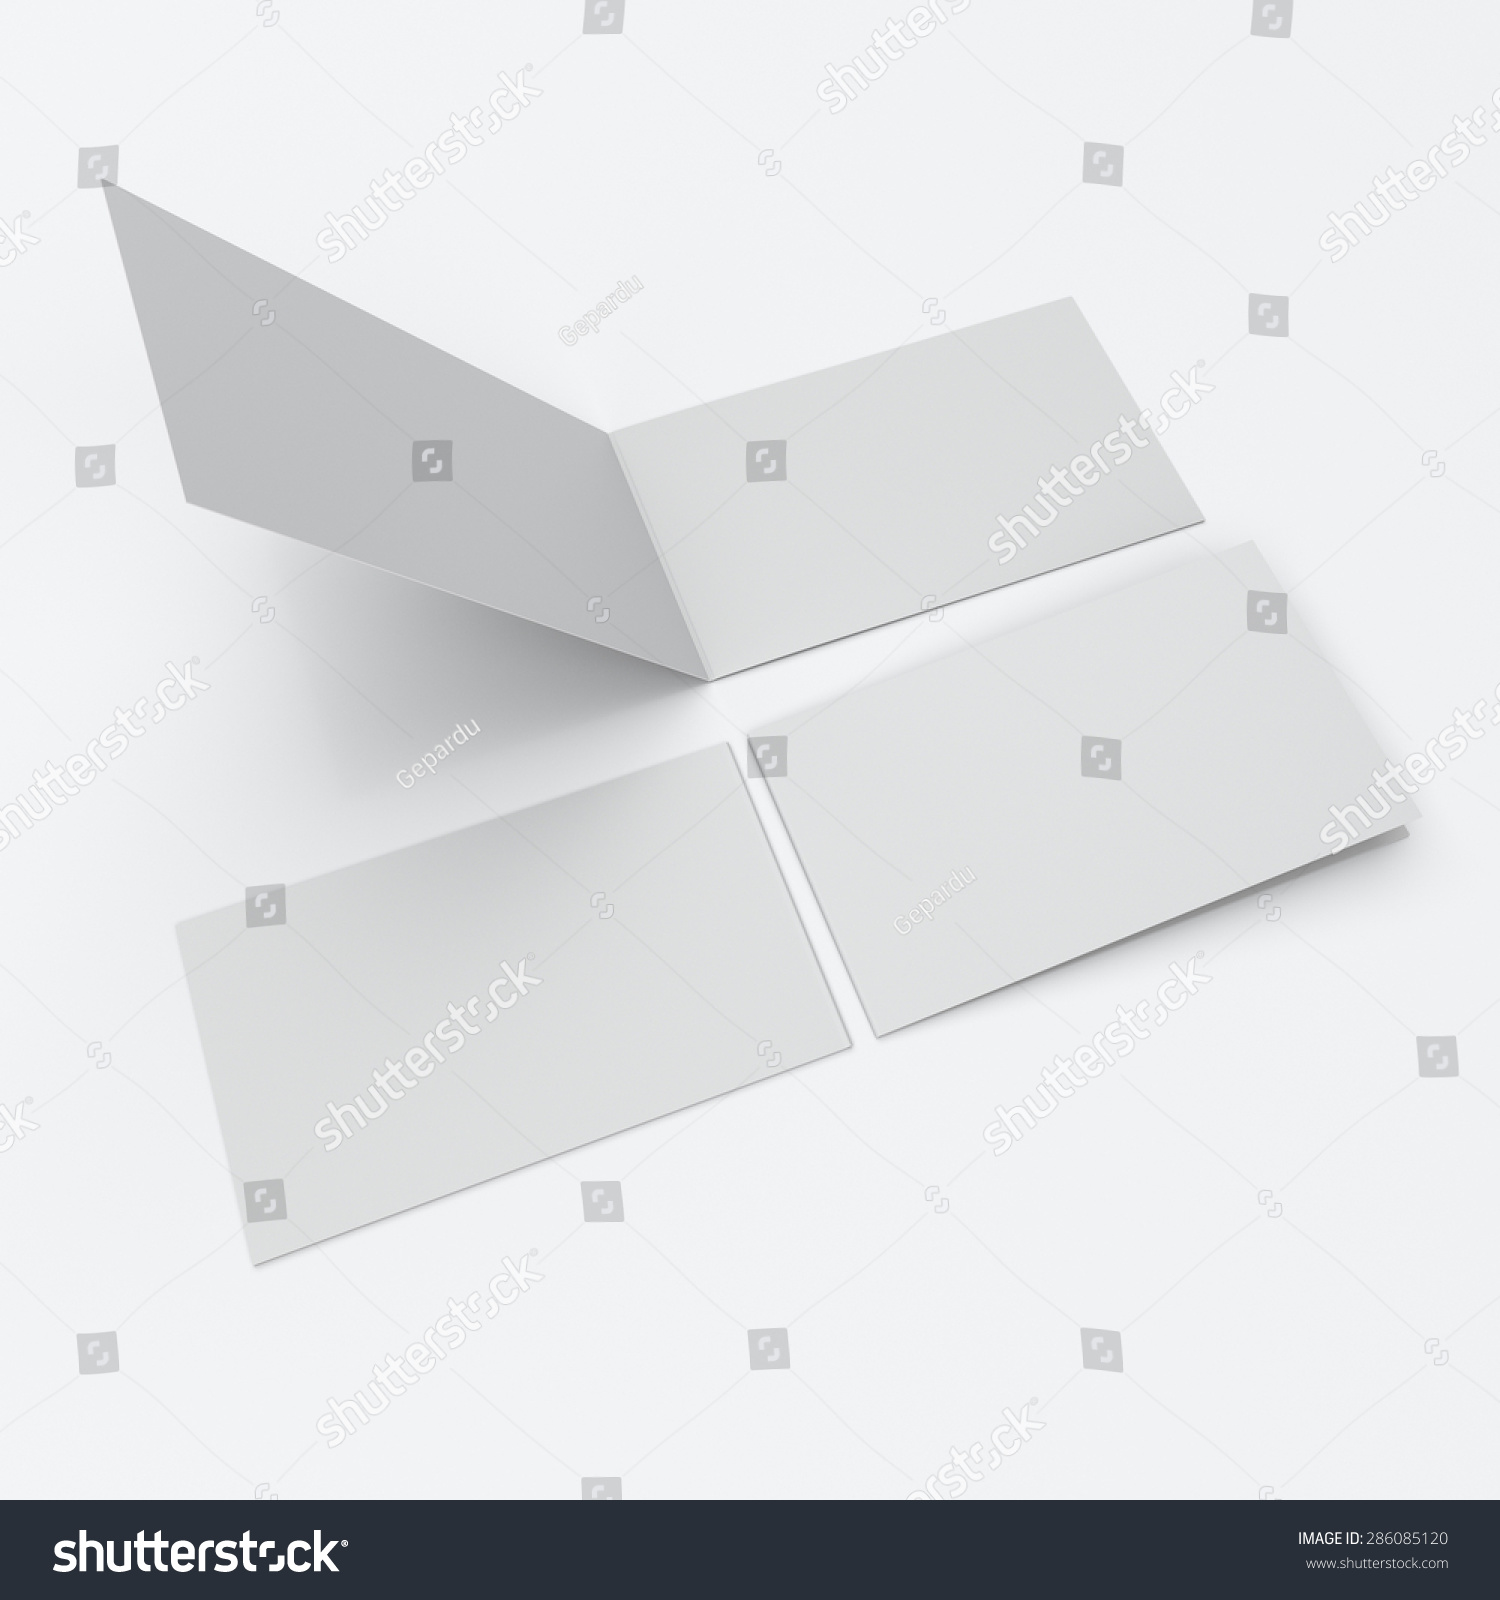 Royalty free stock illustration of blank twoleaf greeting cards blank two leaf greeting cards front and back view m4hsunfo